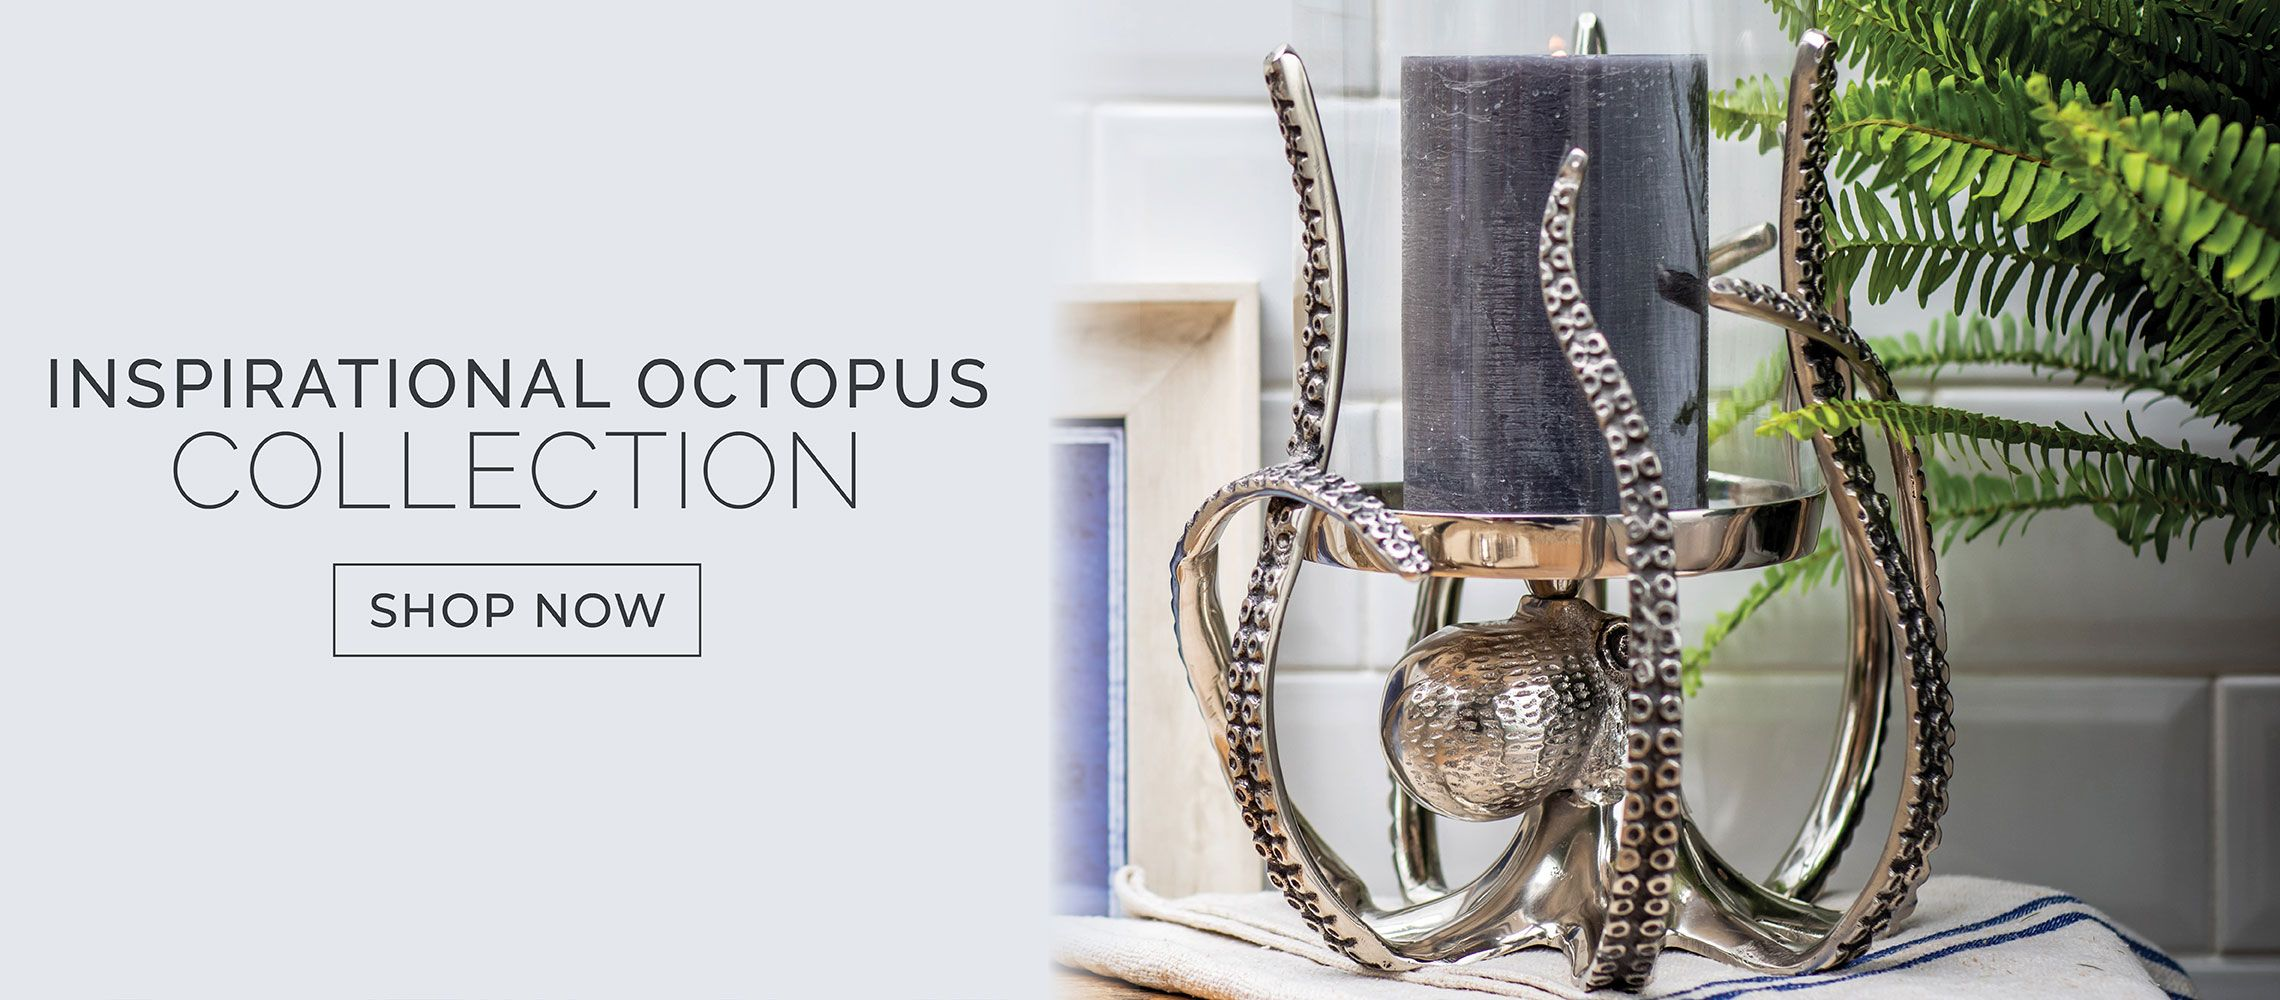 Octopus Collection